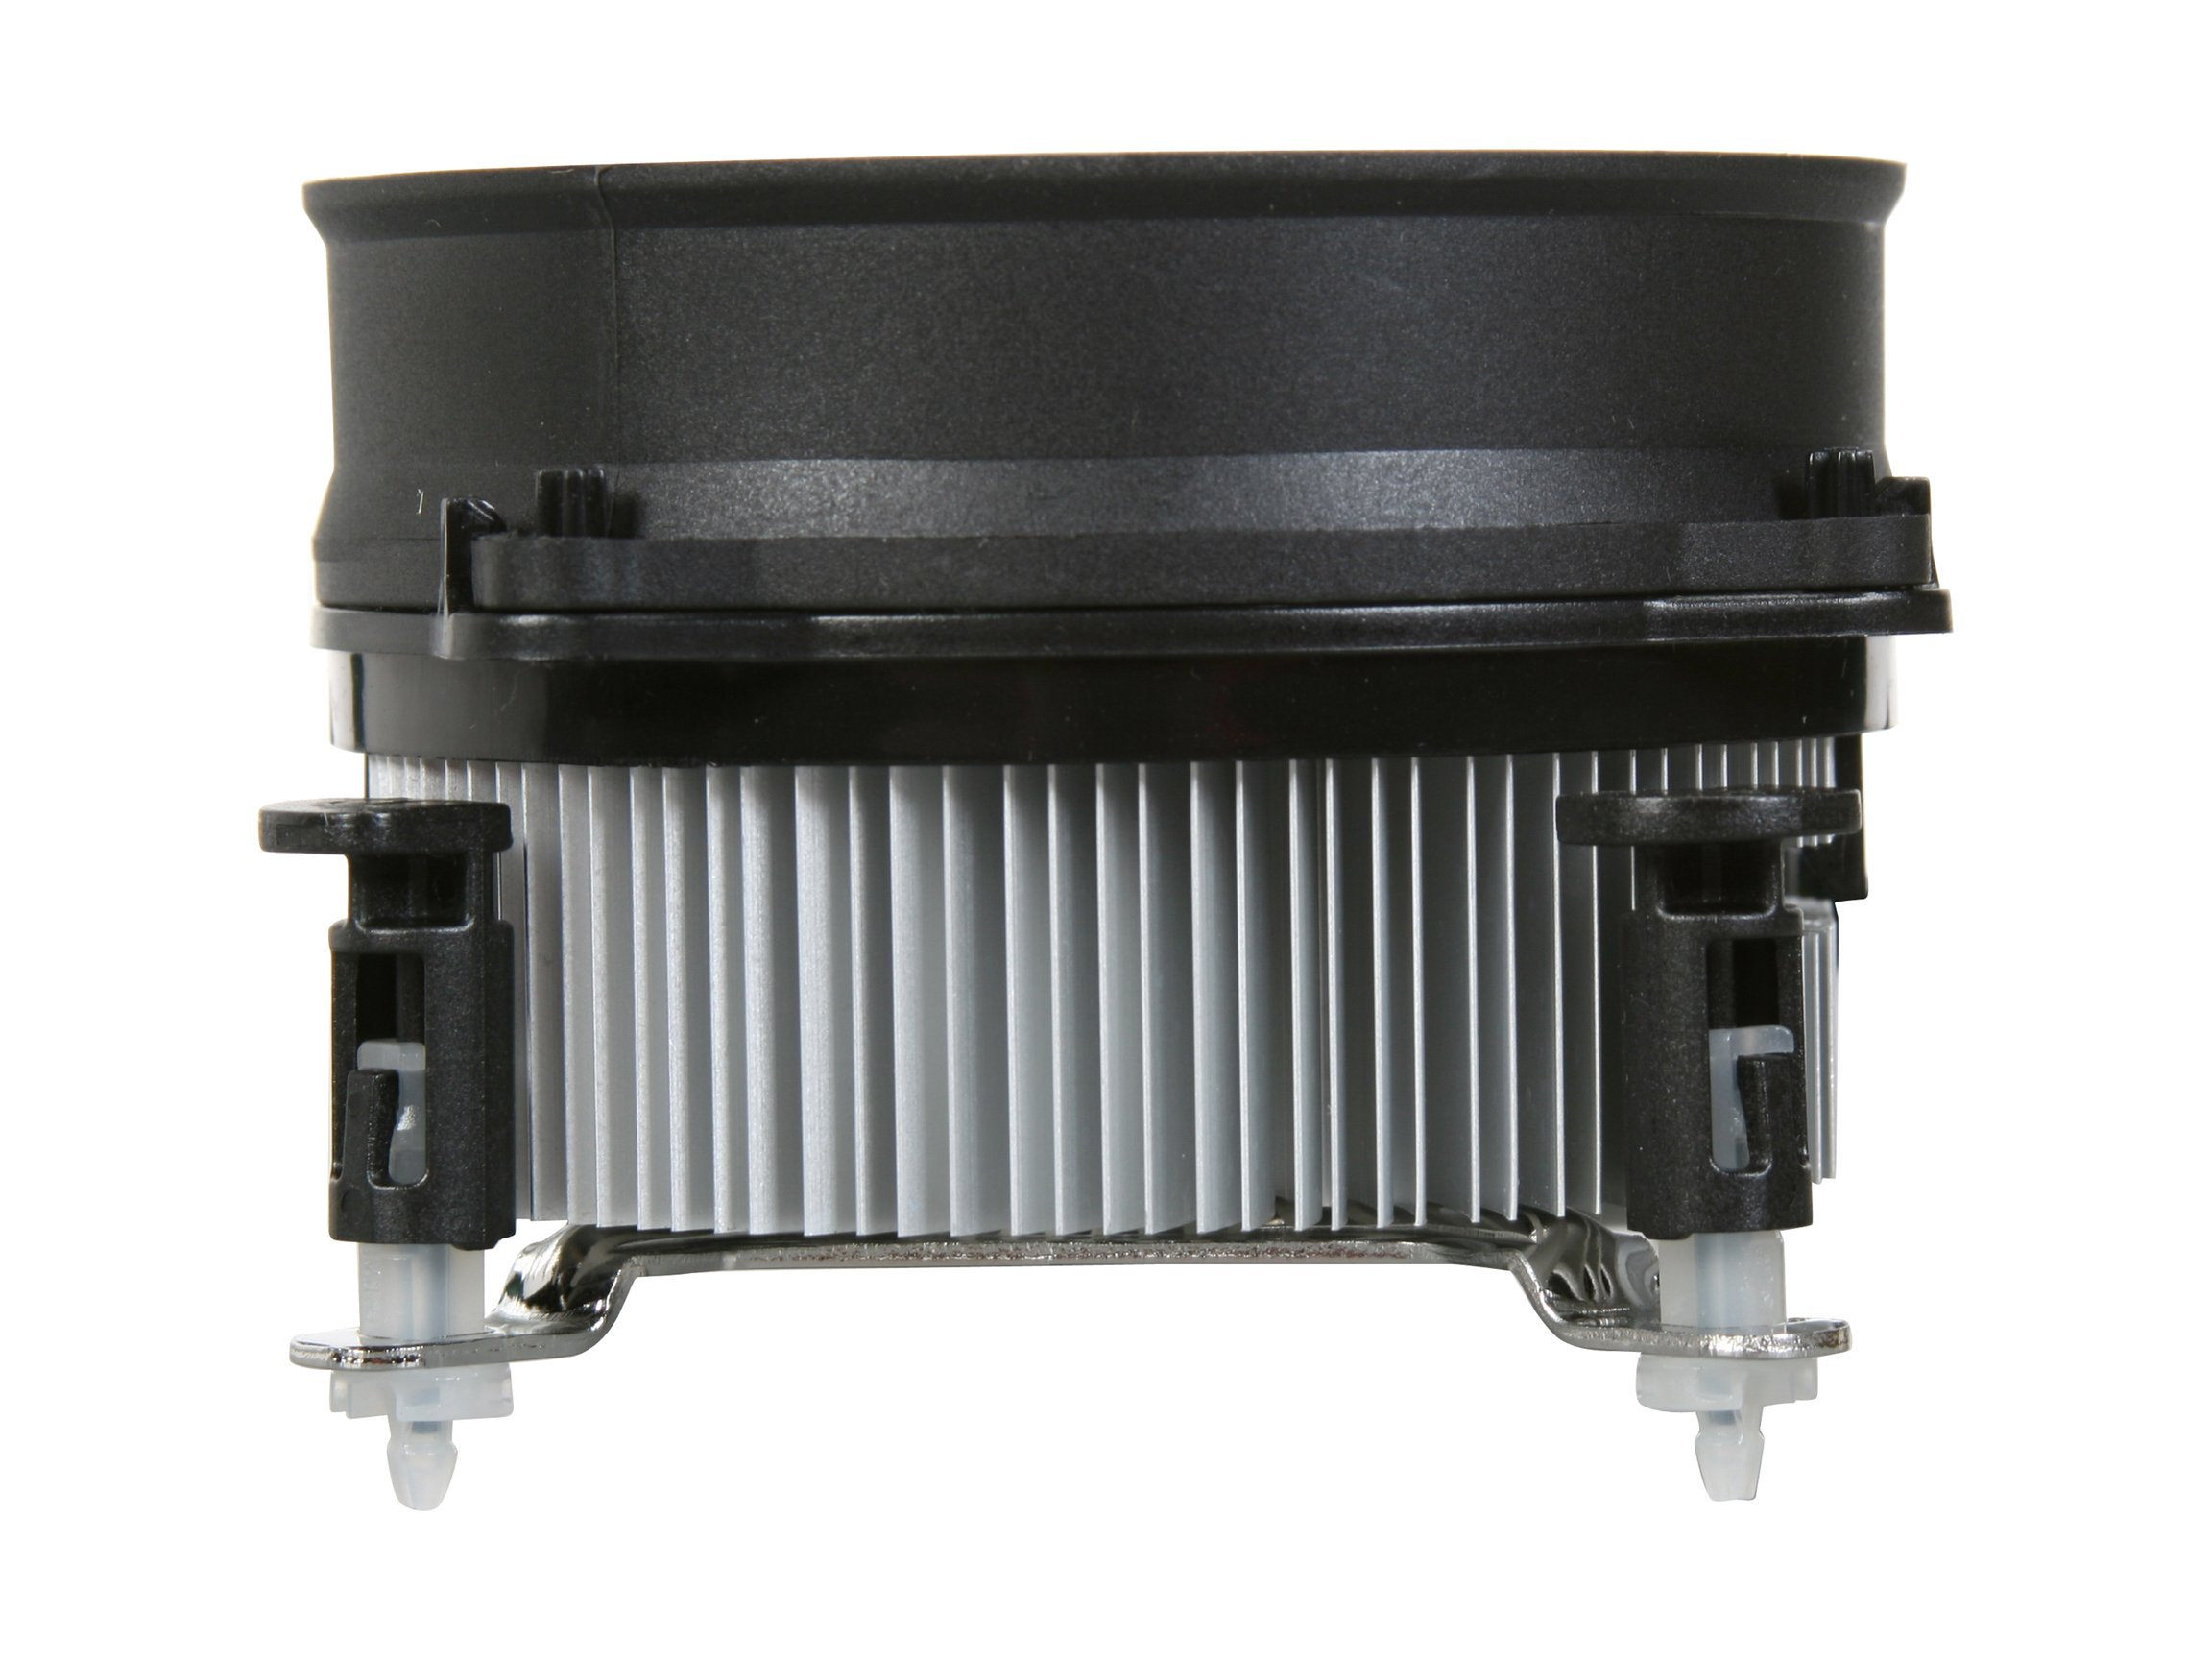 Rosewill RCX-Z90-AL 92mm Sleeve CPU Cooler by Rosewill (Image #3)